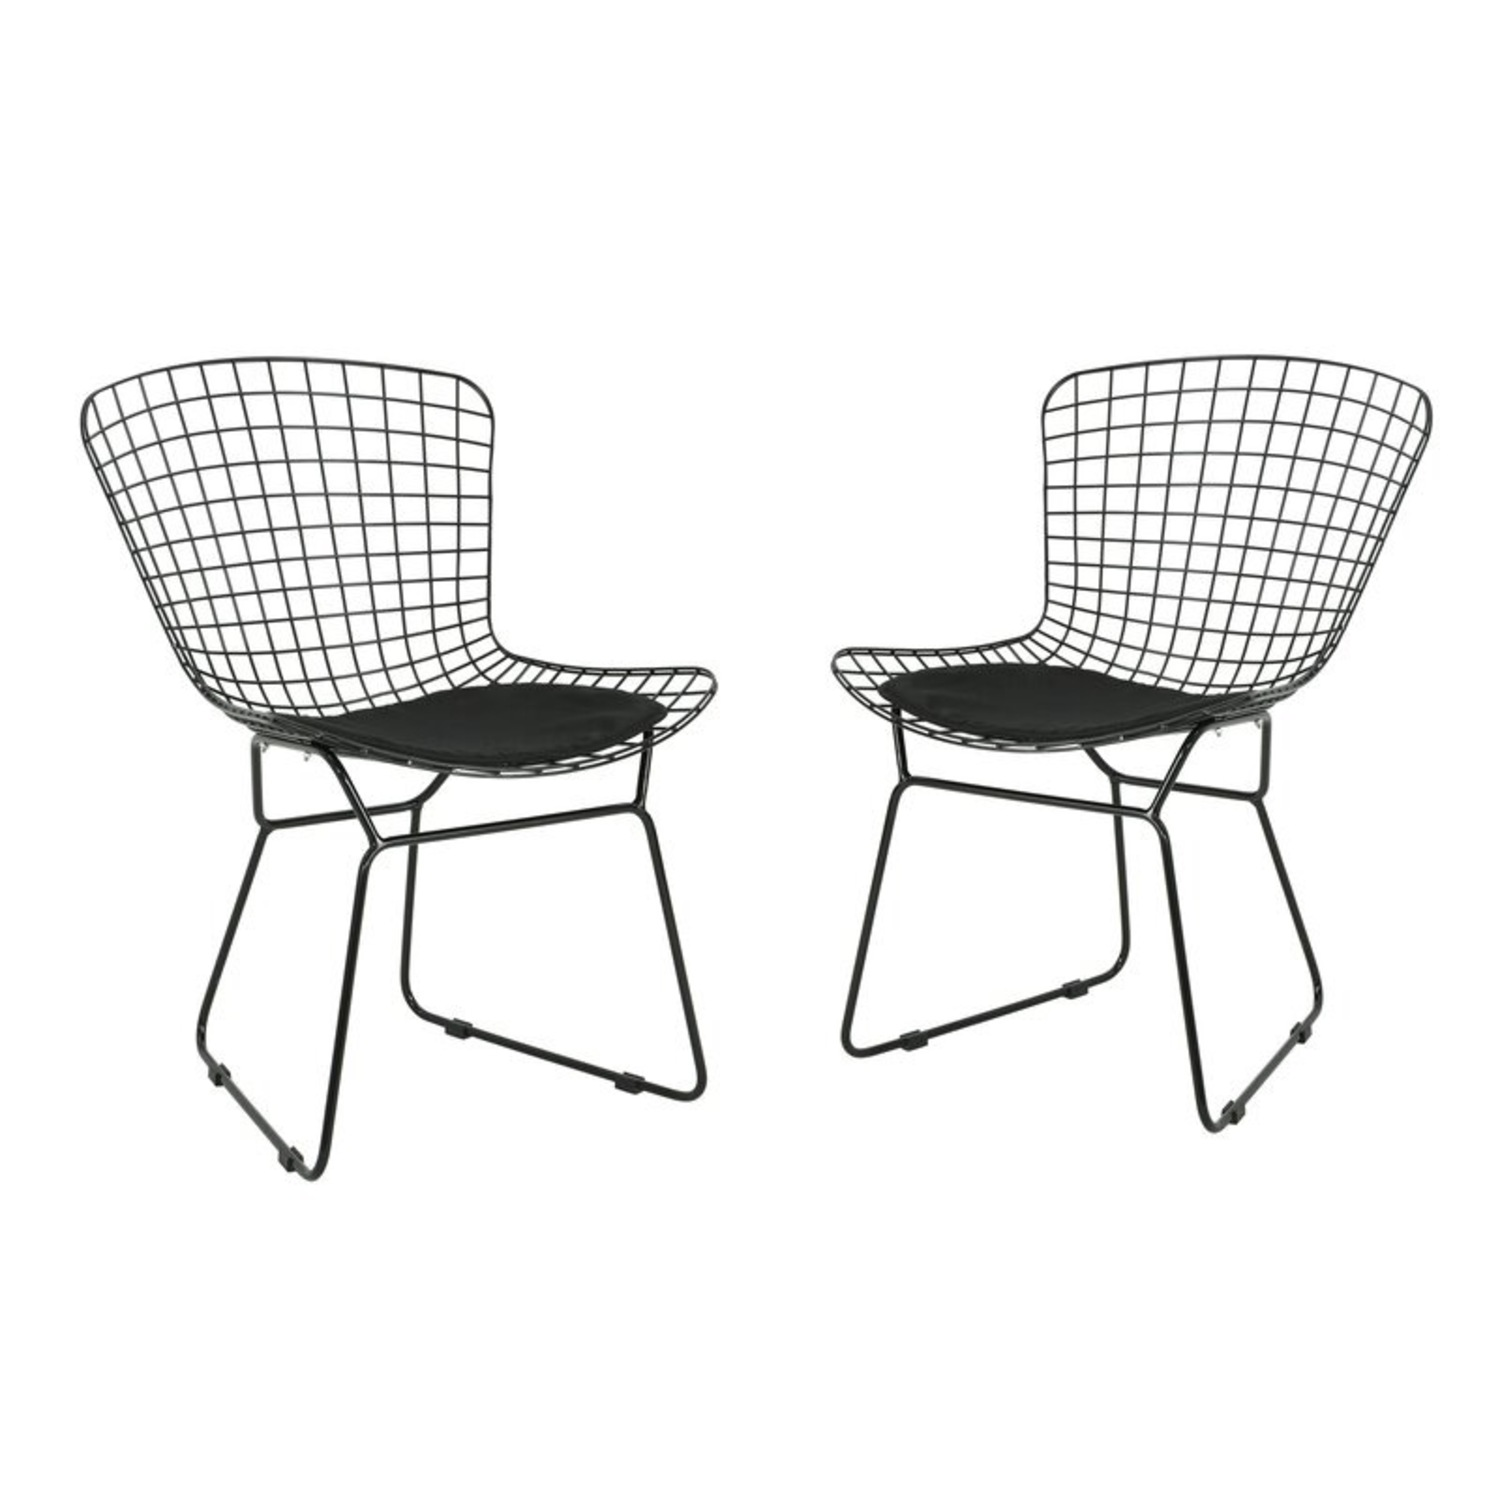 Wayfair Hively Dining Chair with Cushion - image-4